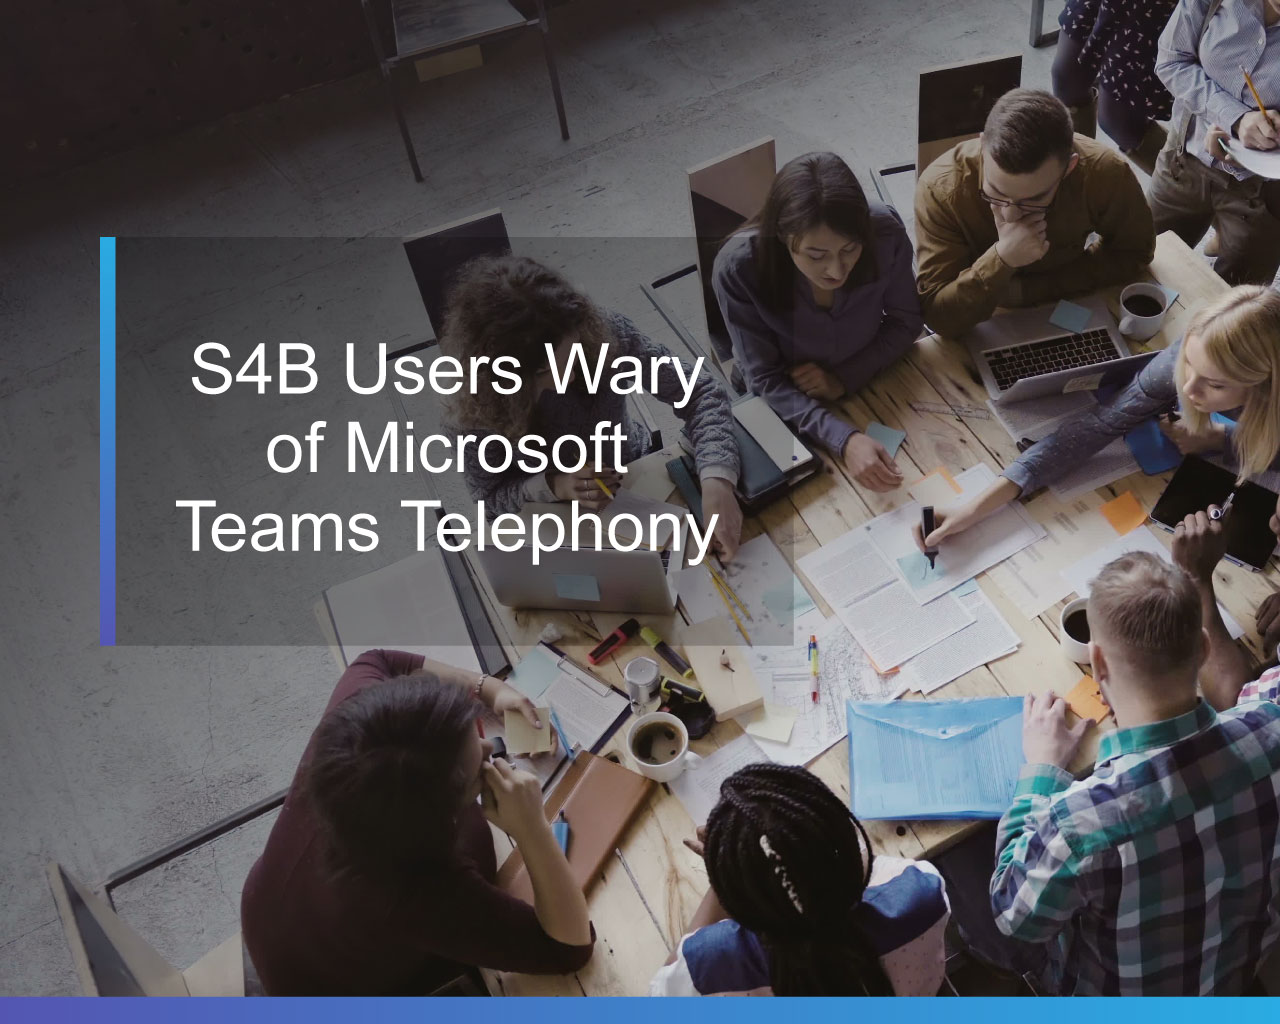 S4B Users Wary of Microsoft Teams Telephony